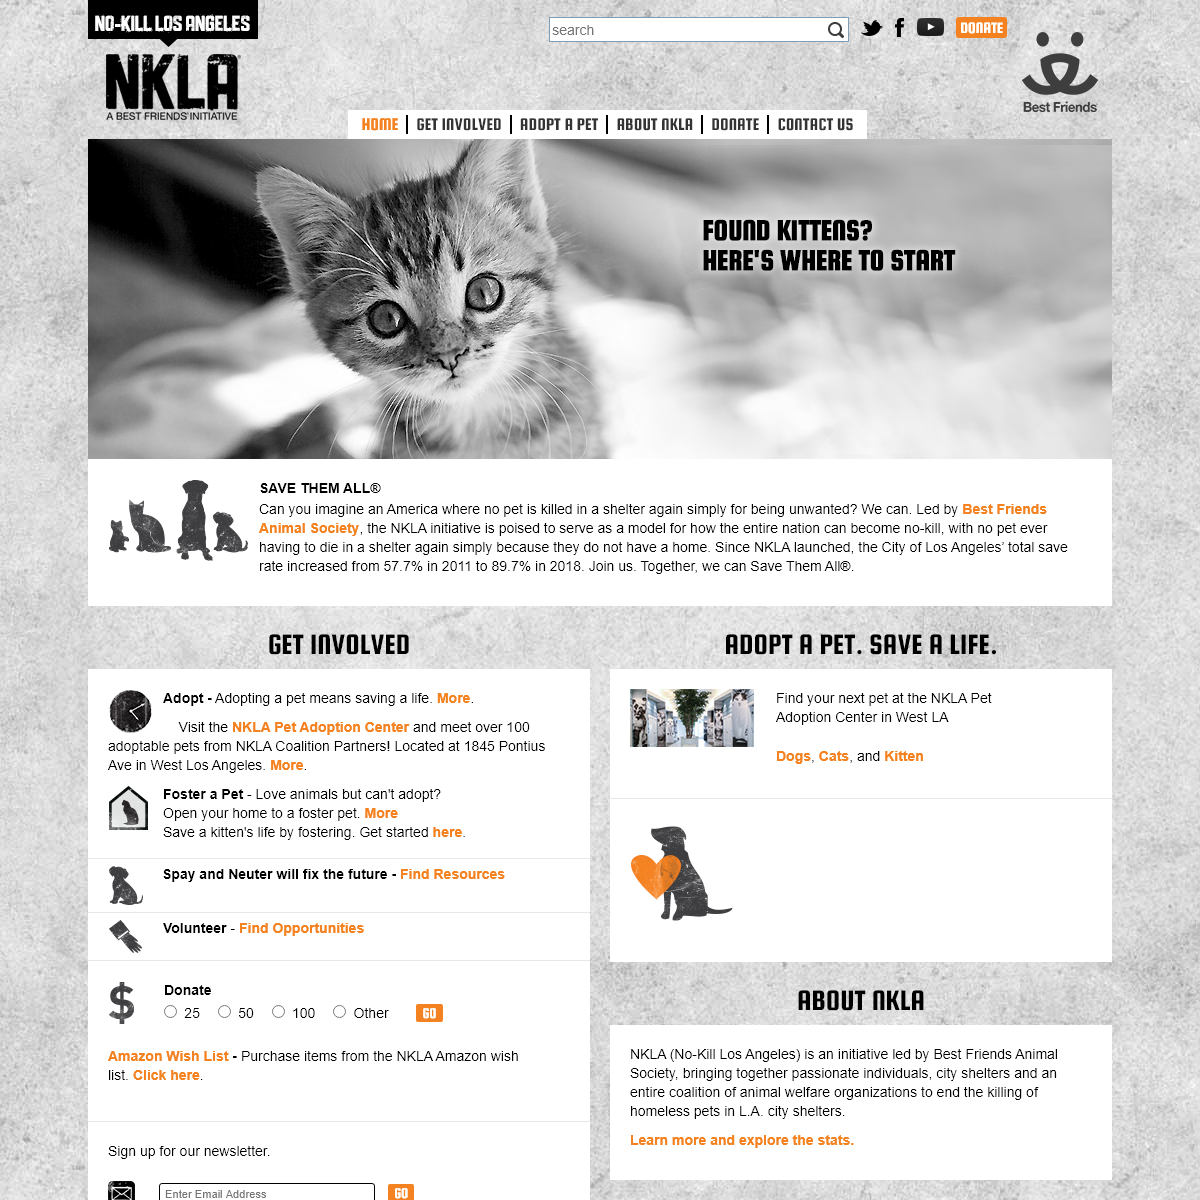 No-Kill Los Angeles - NKLA